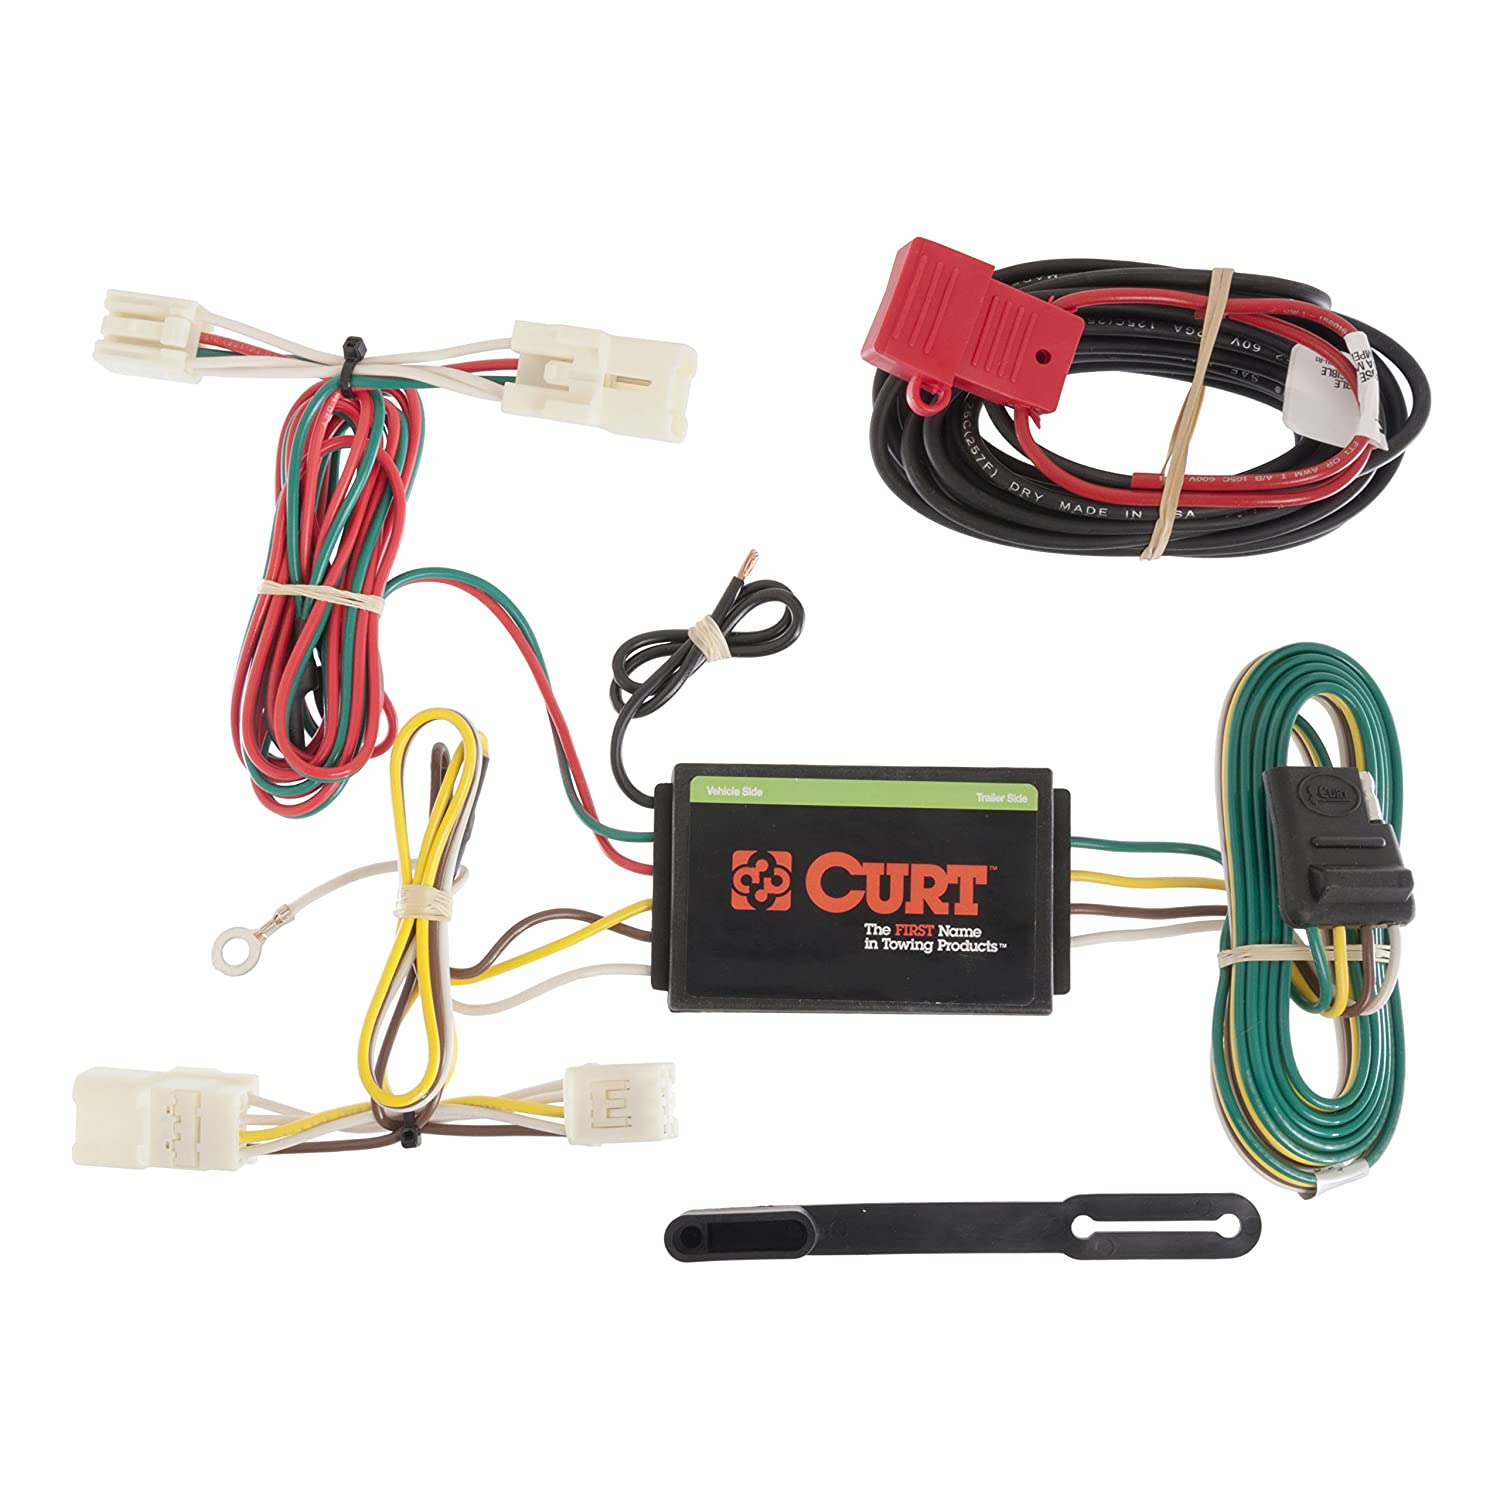 817l7jcQOtL._SL1500_ amazon com curt 56165 custom wiring harness automotive wiring harness for trailer hitch at eliteediting.co